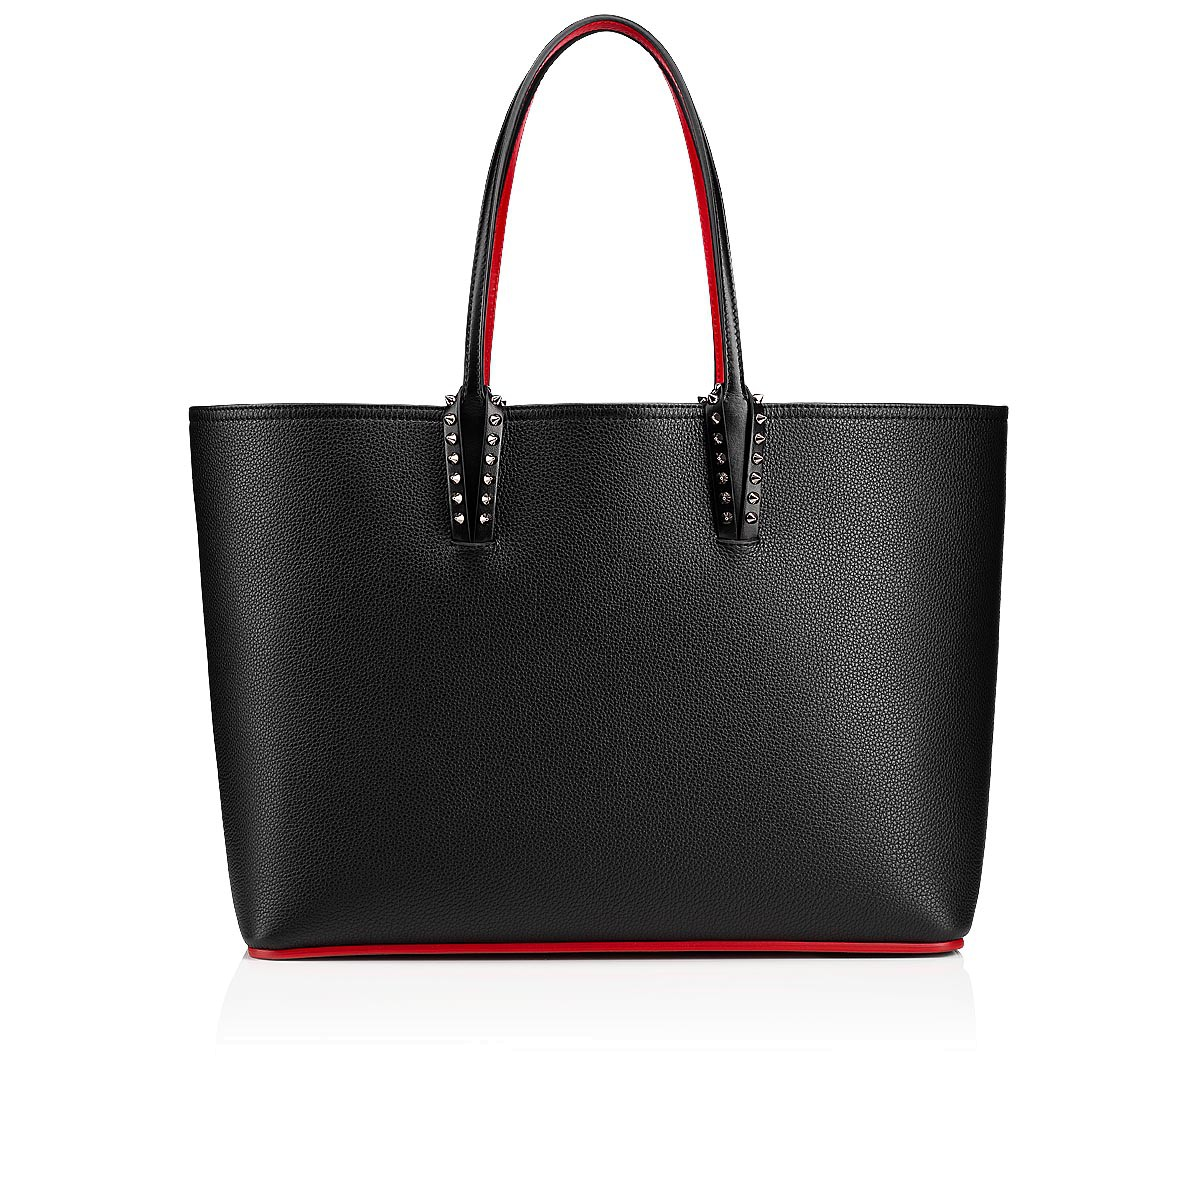 5b6e7bed9b Cabata Tote Bag Black Calfskin - Handbags - Christian Louboutin